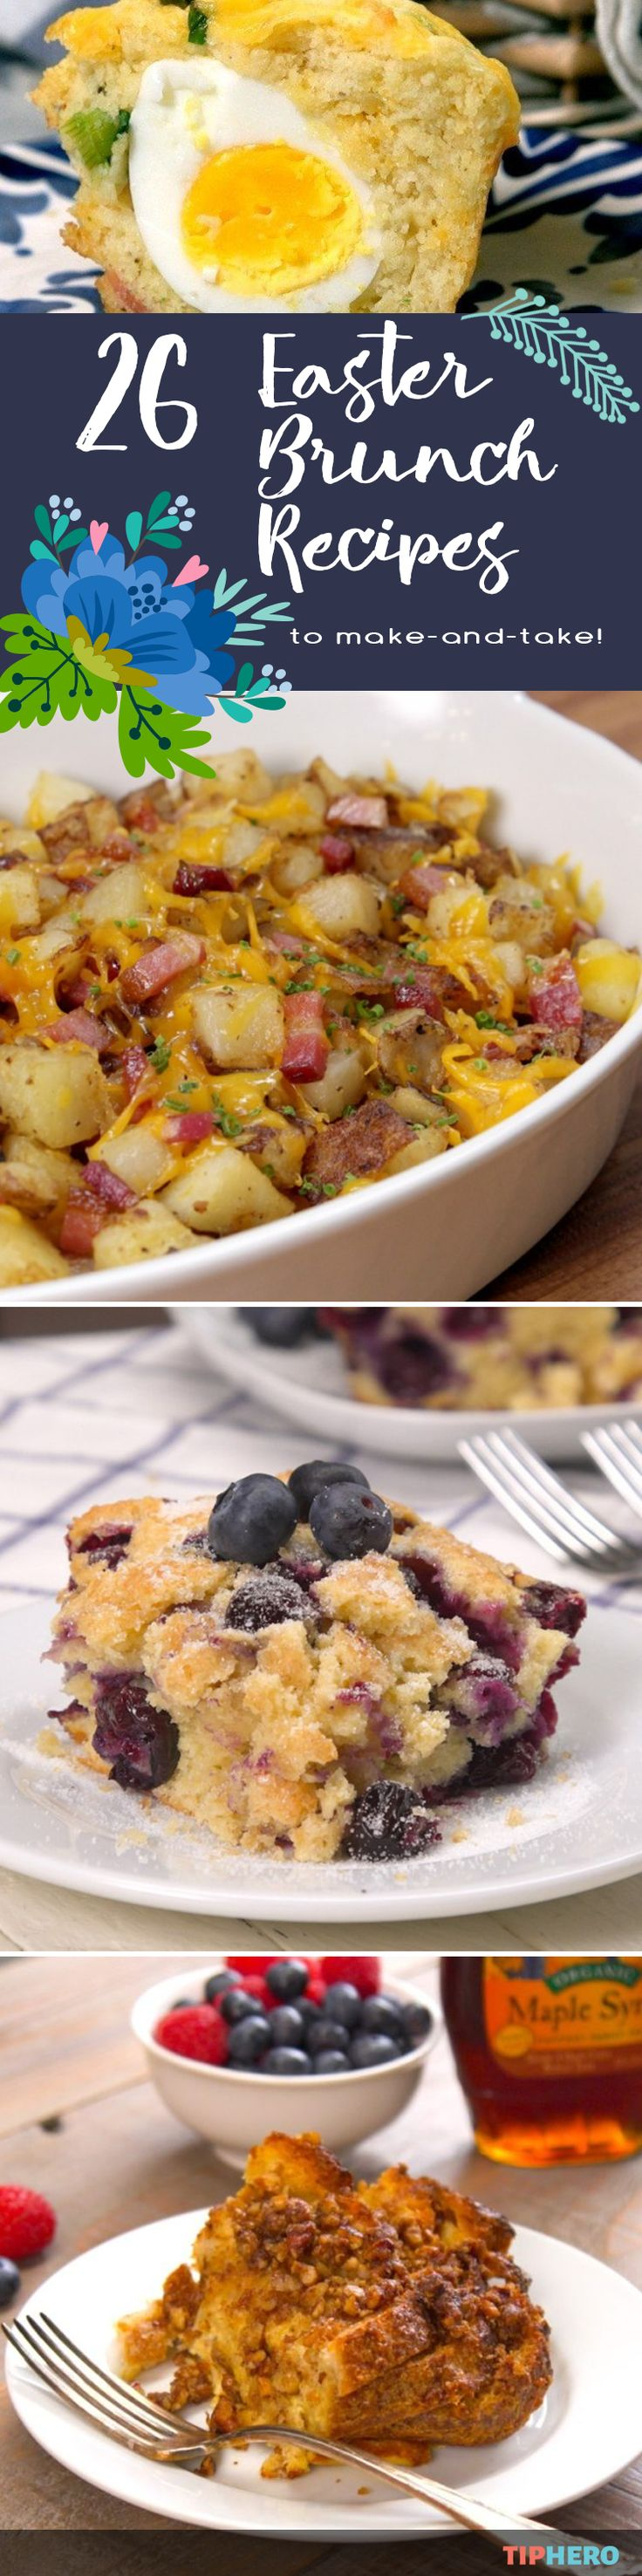 Mmm, Easter Brunch! For most of us this means traveling to visit friends and family with a brunch dish in tow. So we've put together 26 our of favorite make and take recipes for Easter Brunch. From deviled eggs to french toast bakes to fruit tarts to loaded potato casserole, there are plenty of delicious dishes to take on the road!  Click for the full list.